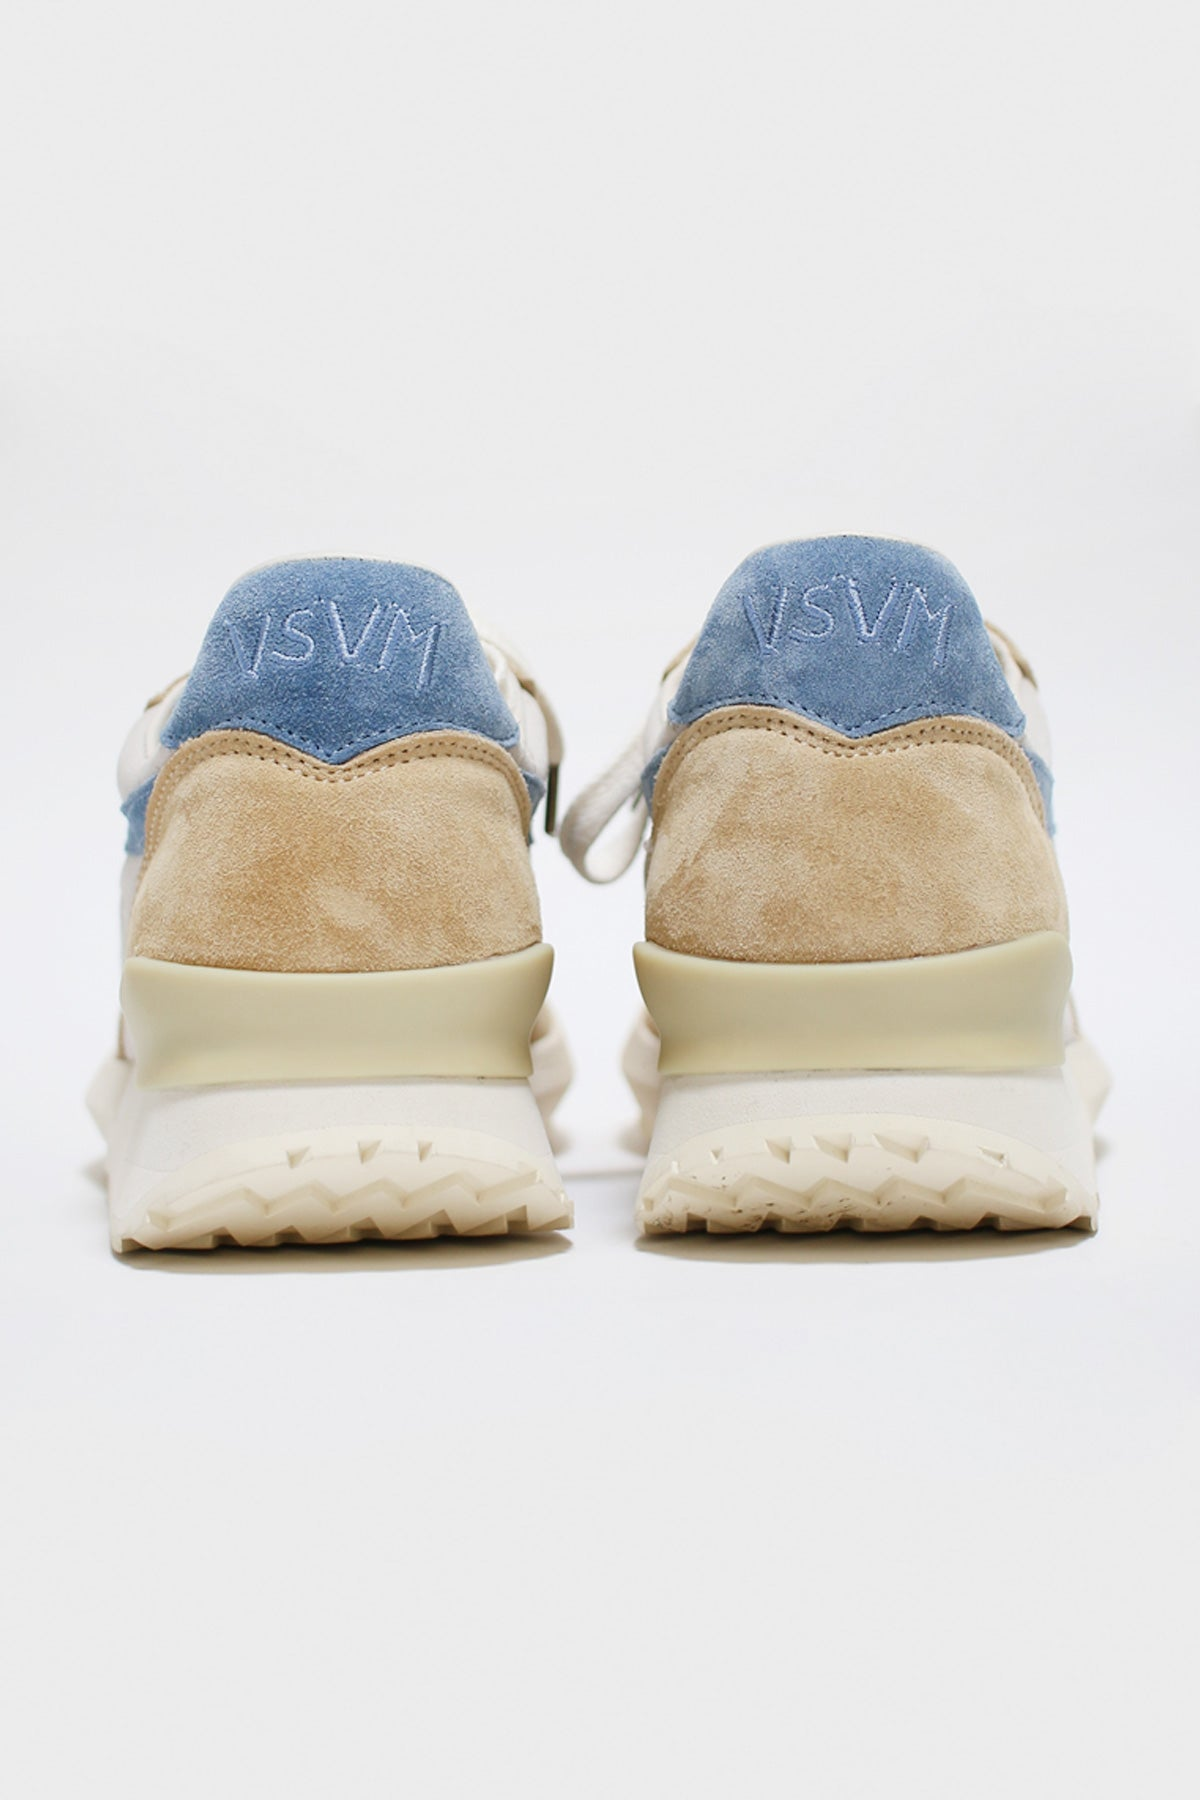 Visvim - FKT Runner - Off White - Canoe Club